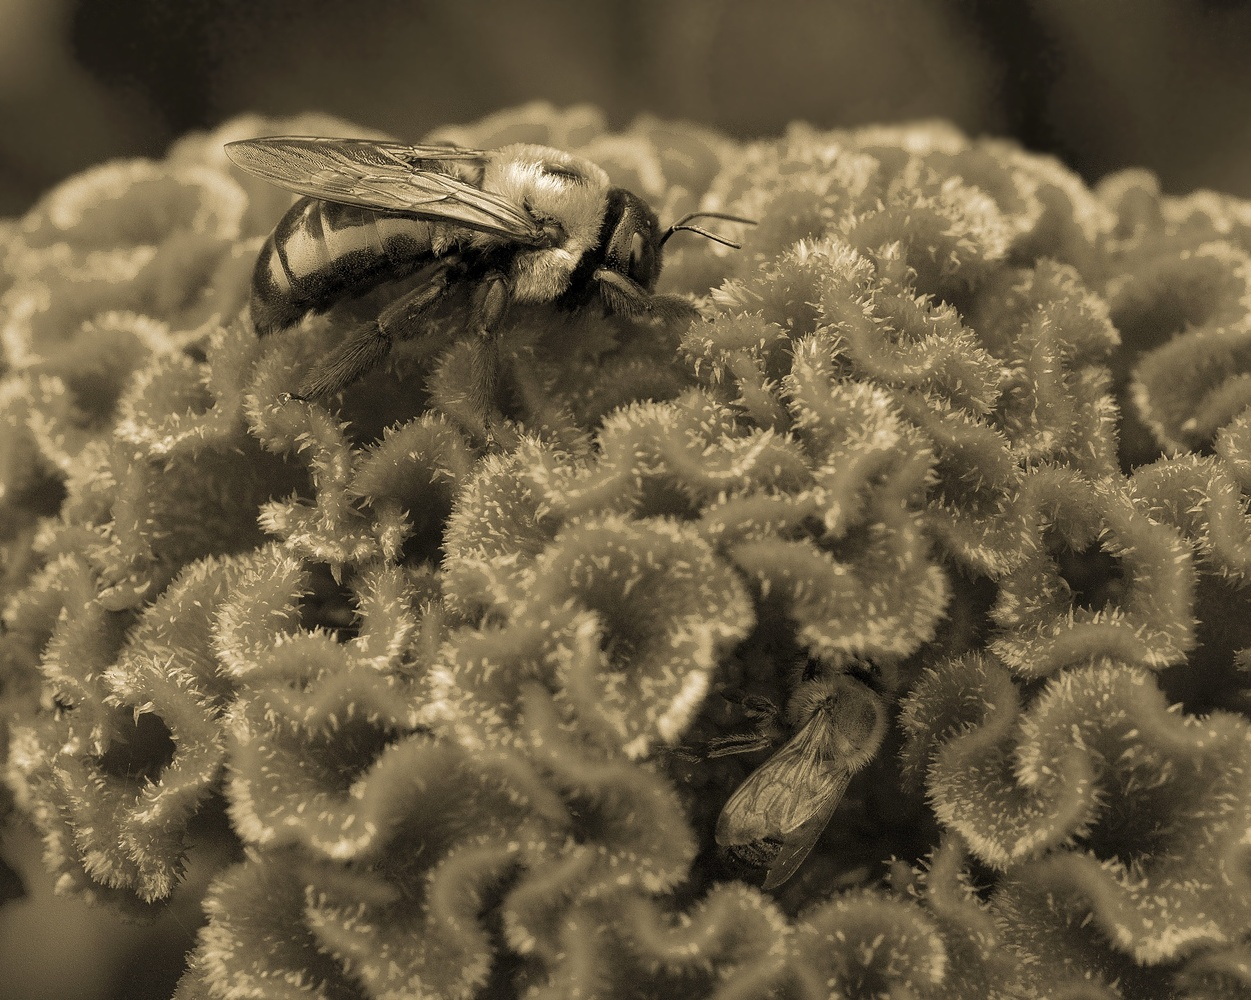 Bees by Mark Riedy